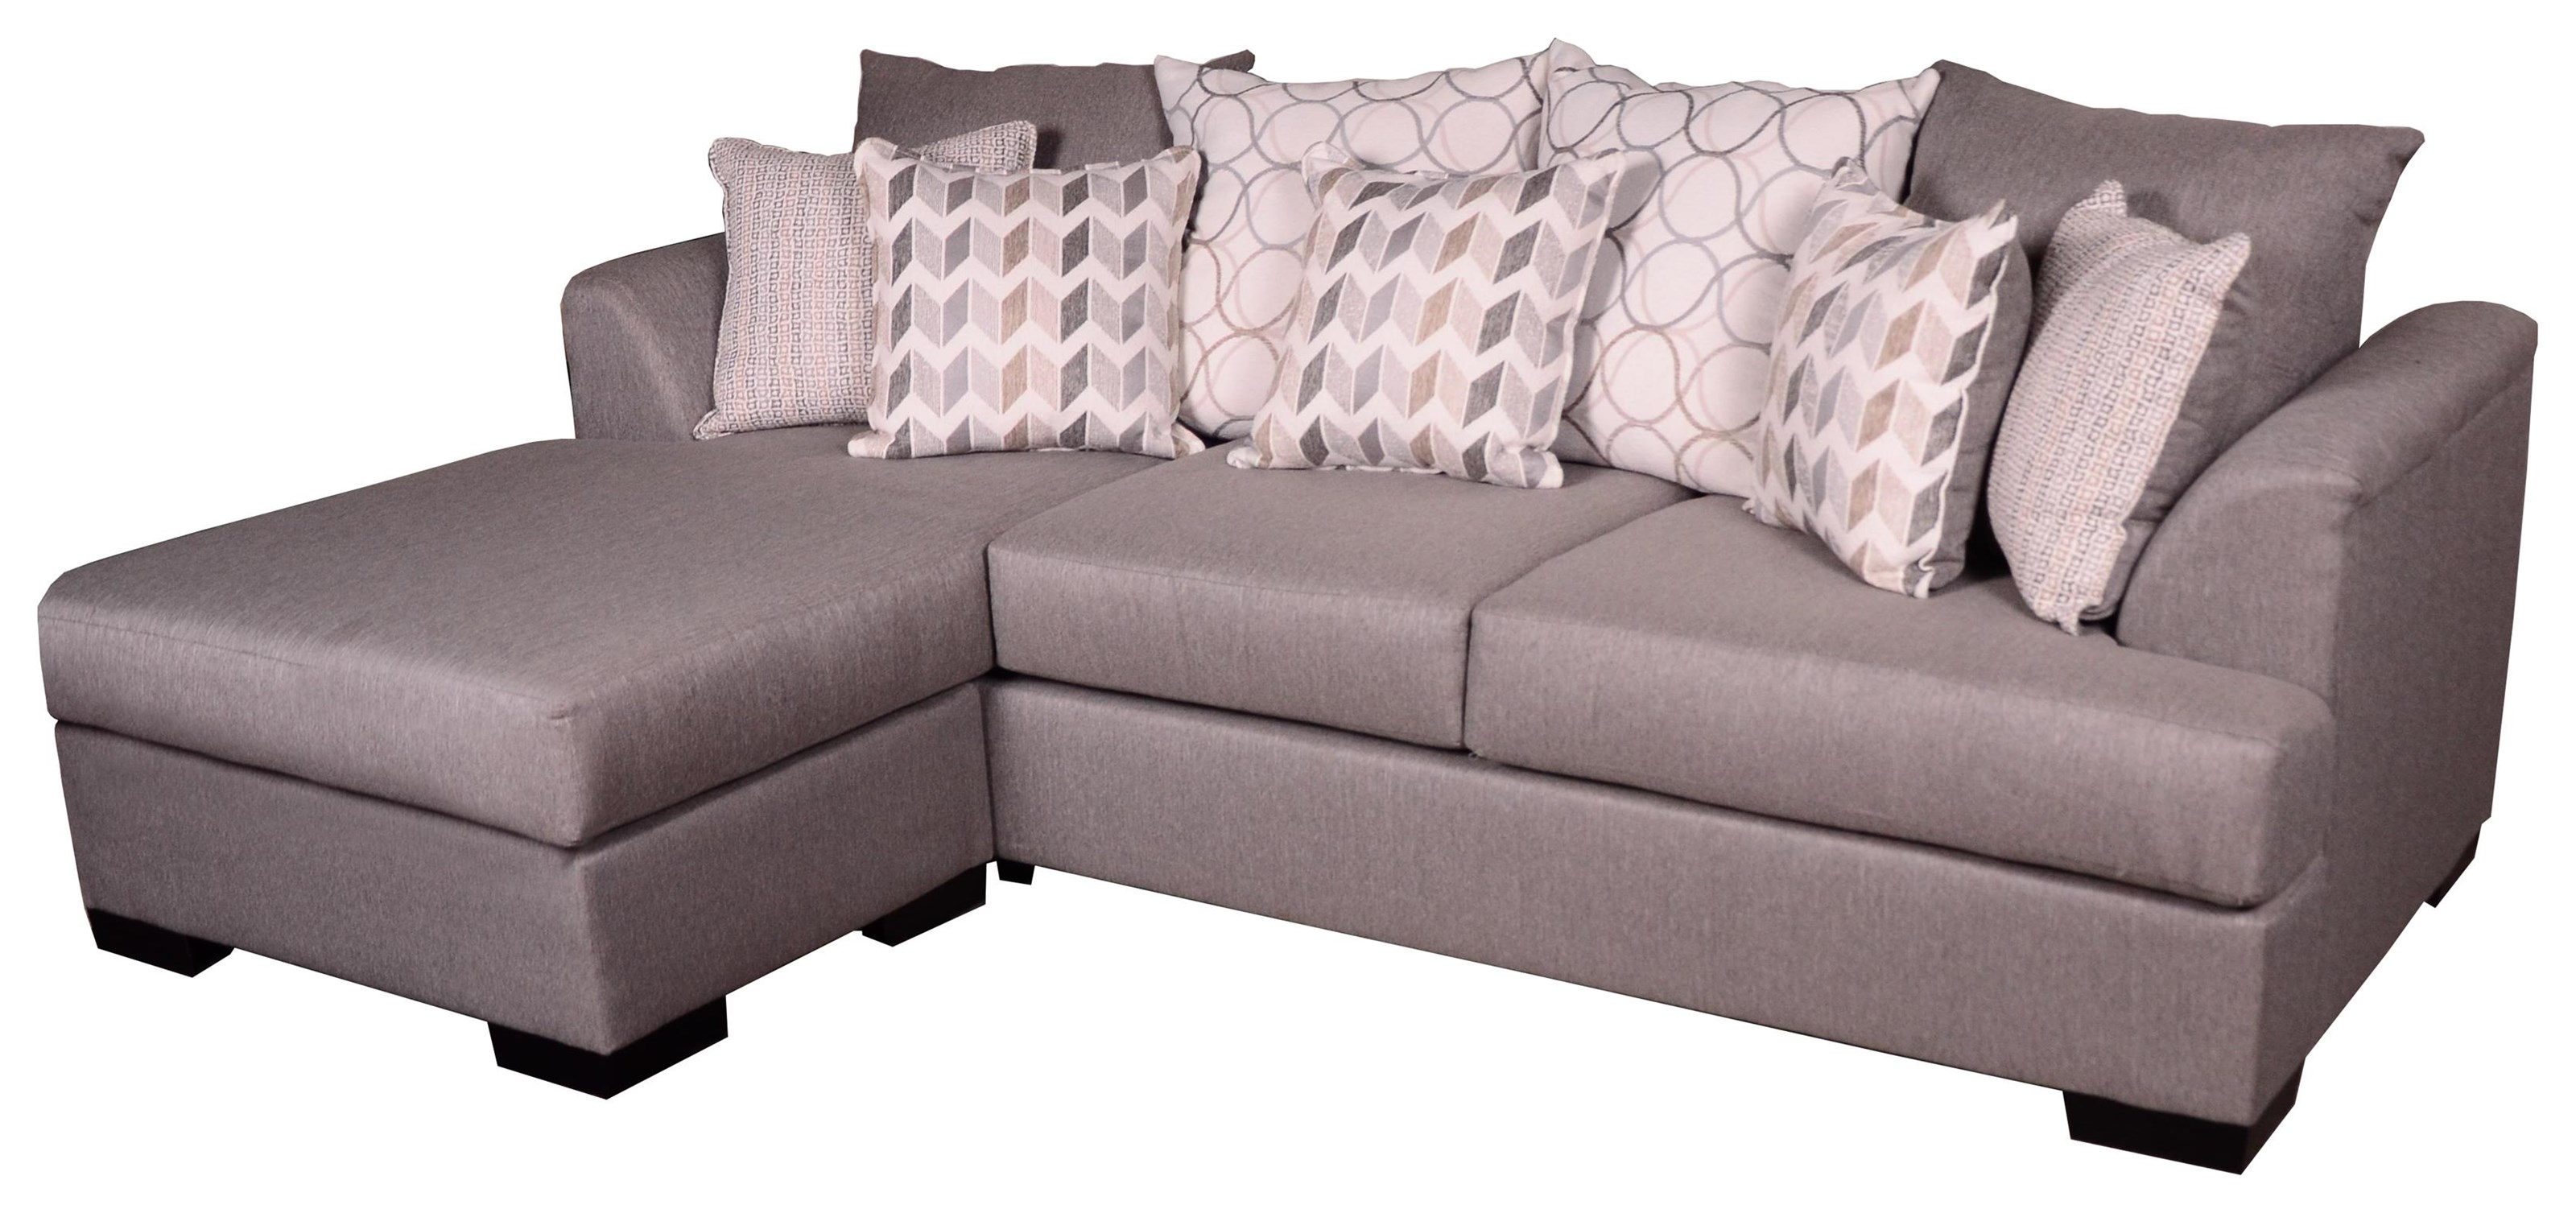 Passport Justice Stone Sectional Sofa by Michael Nicholas at Beck's Furniture